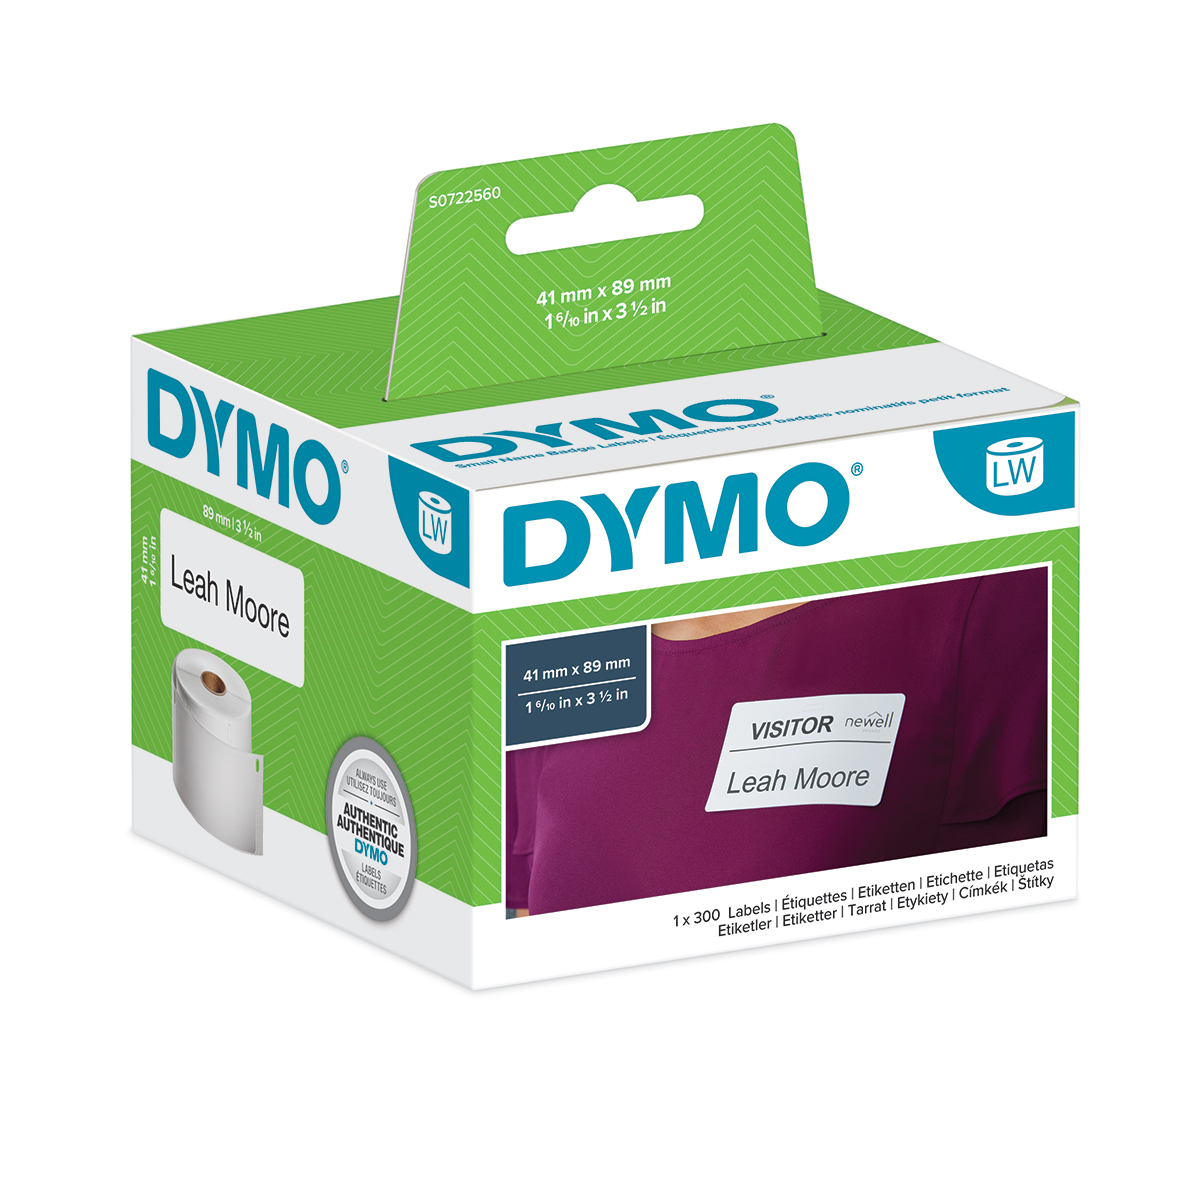 Dymo 11356 41mm x 89mm Name Badge Labels Black on White